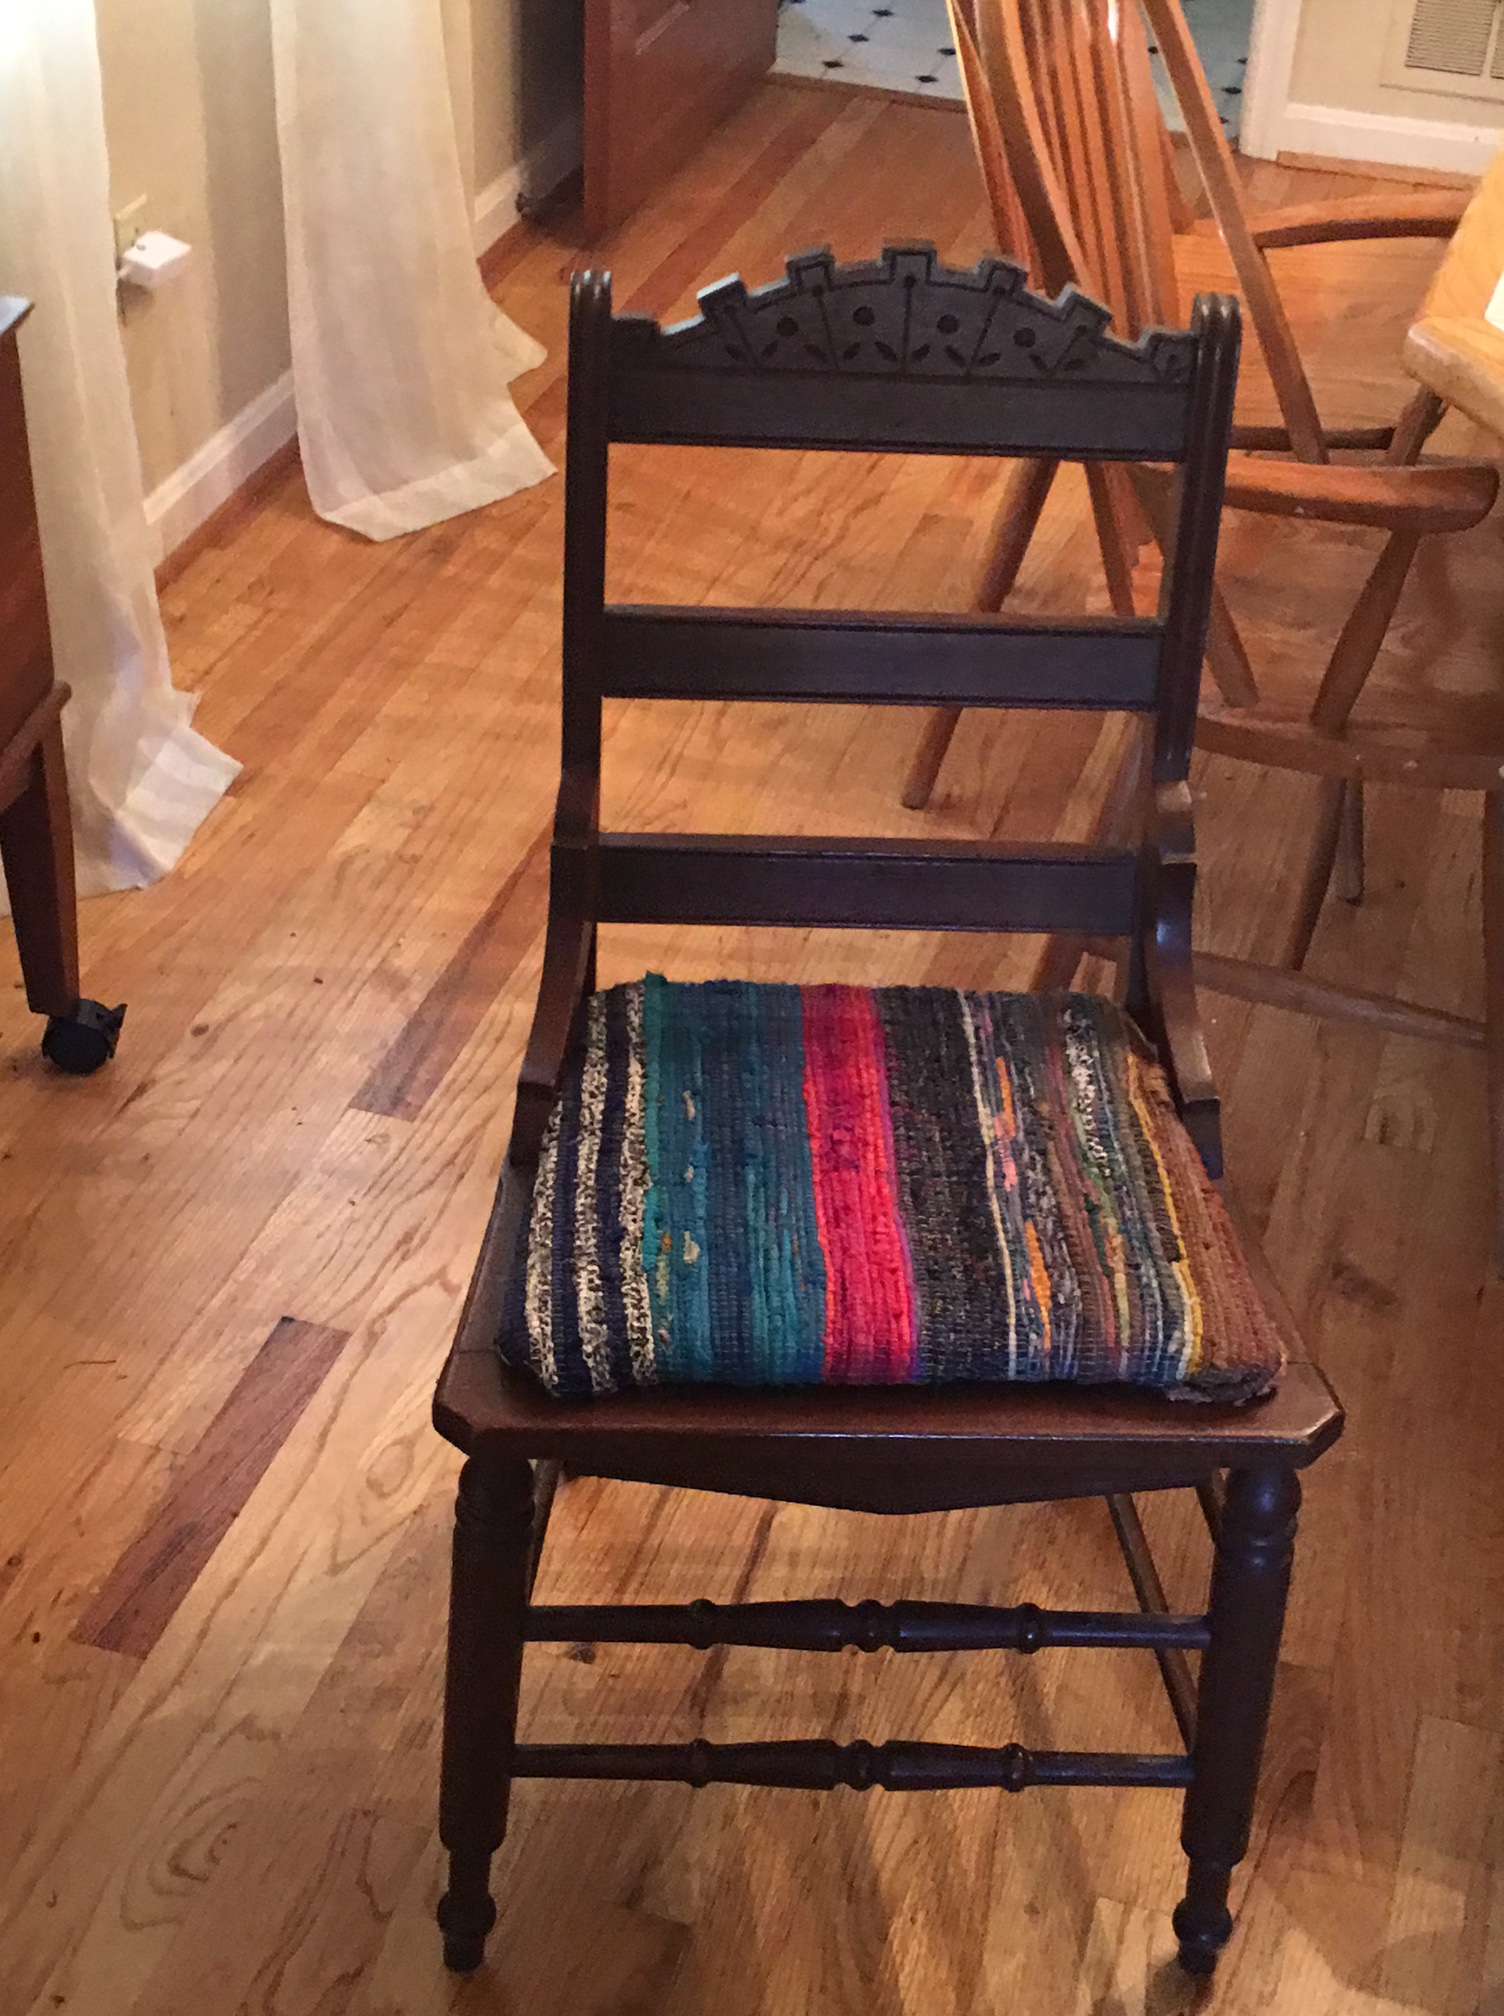 Superbe My Mother In Law Gave Us A Pair Of Chairs. Theyu0027re Eastlake And Quite  Lovely, But The Needlepoint Seats Were Not Our Style. I Was At World Market  Yesterday ...